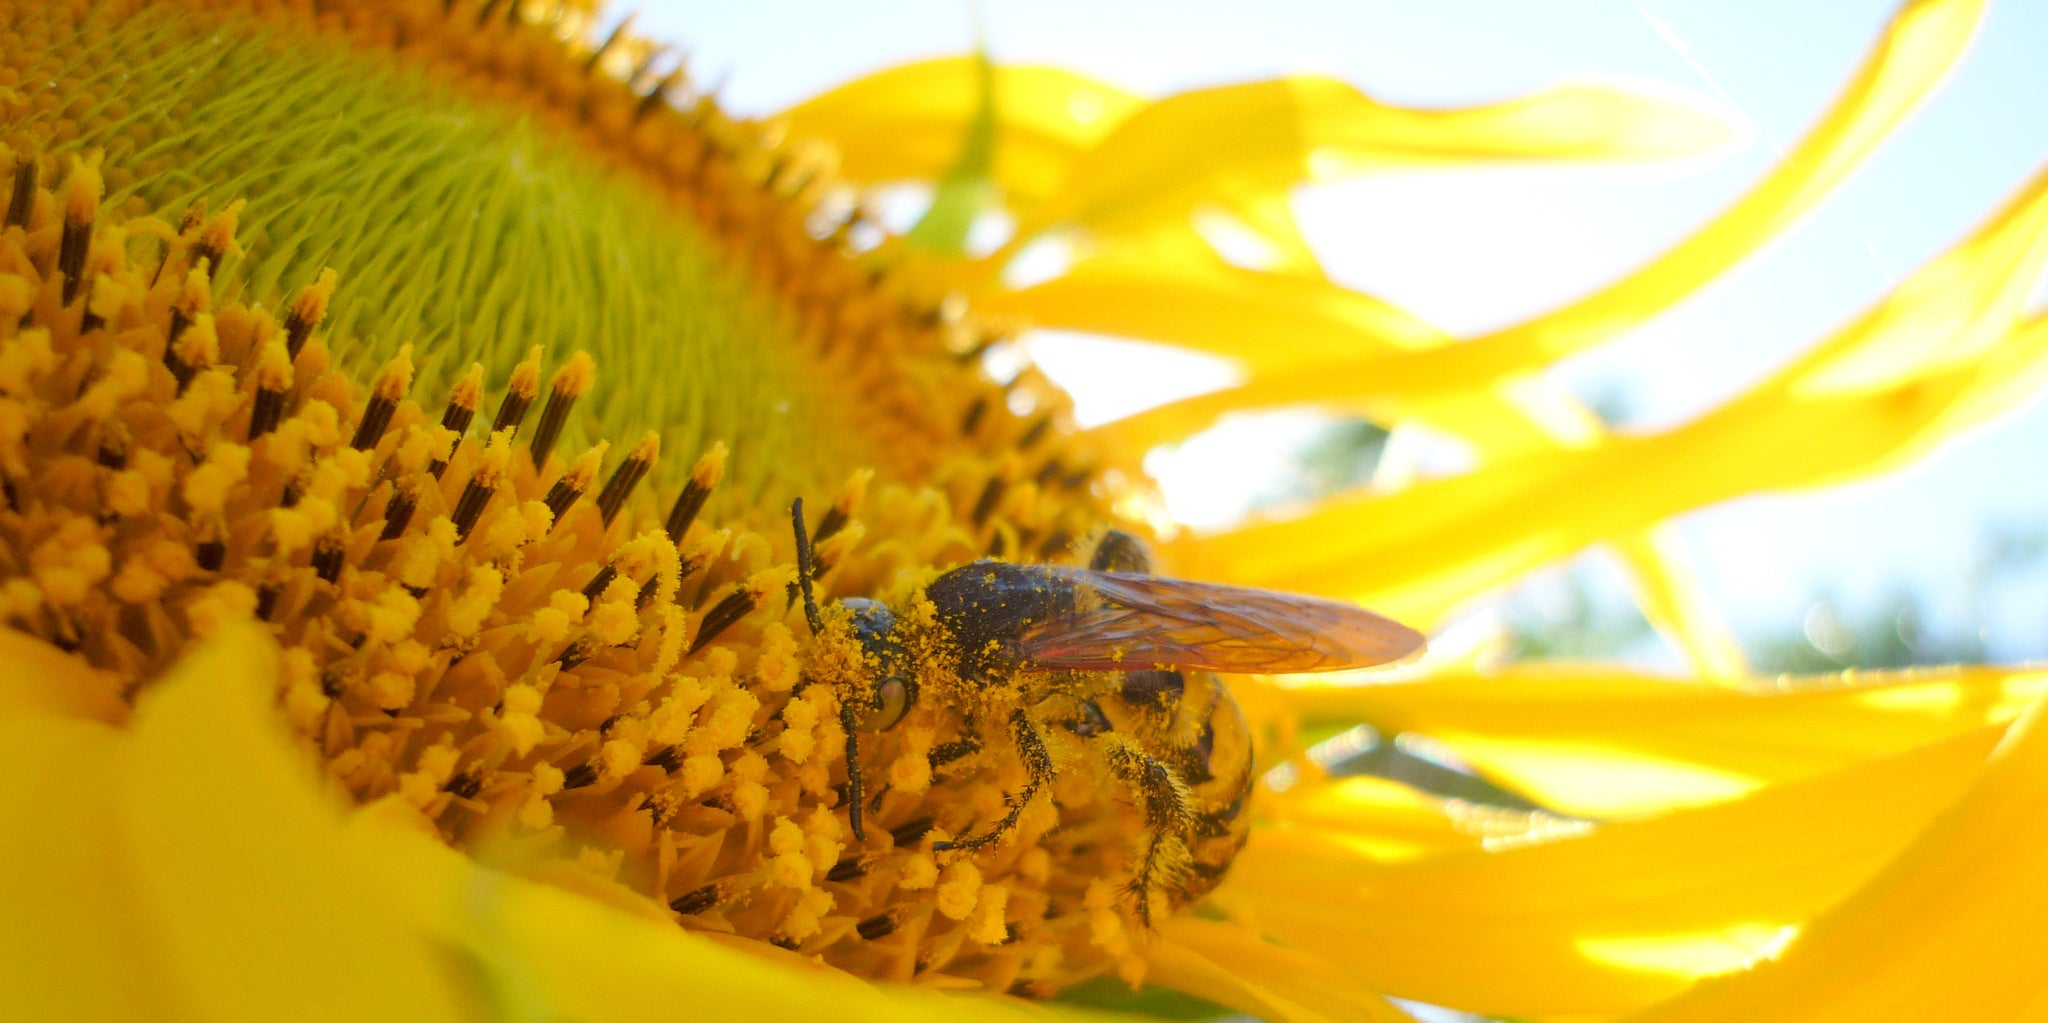 Bee covered in pollen on sunflower Beeswax Essentials